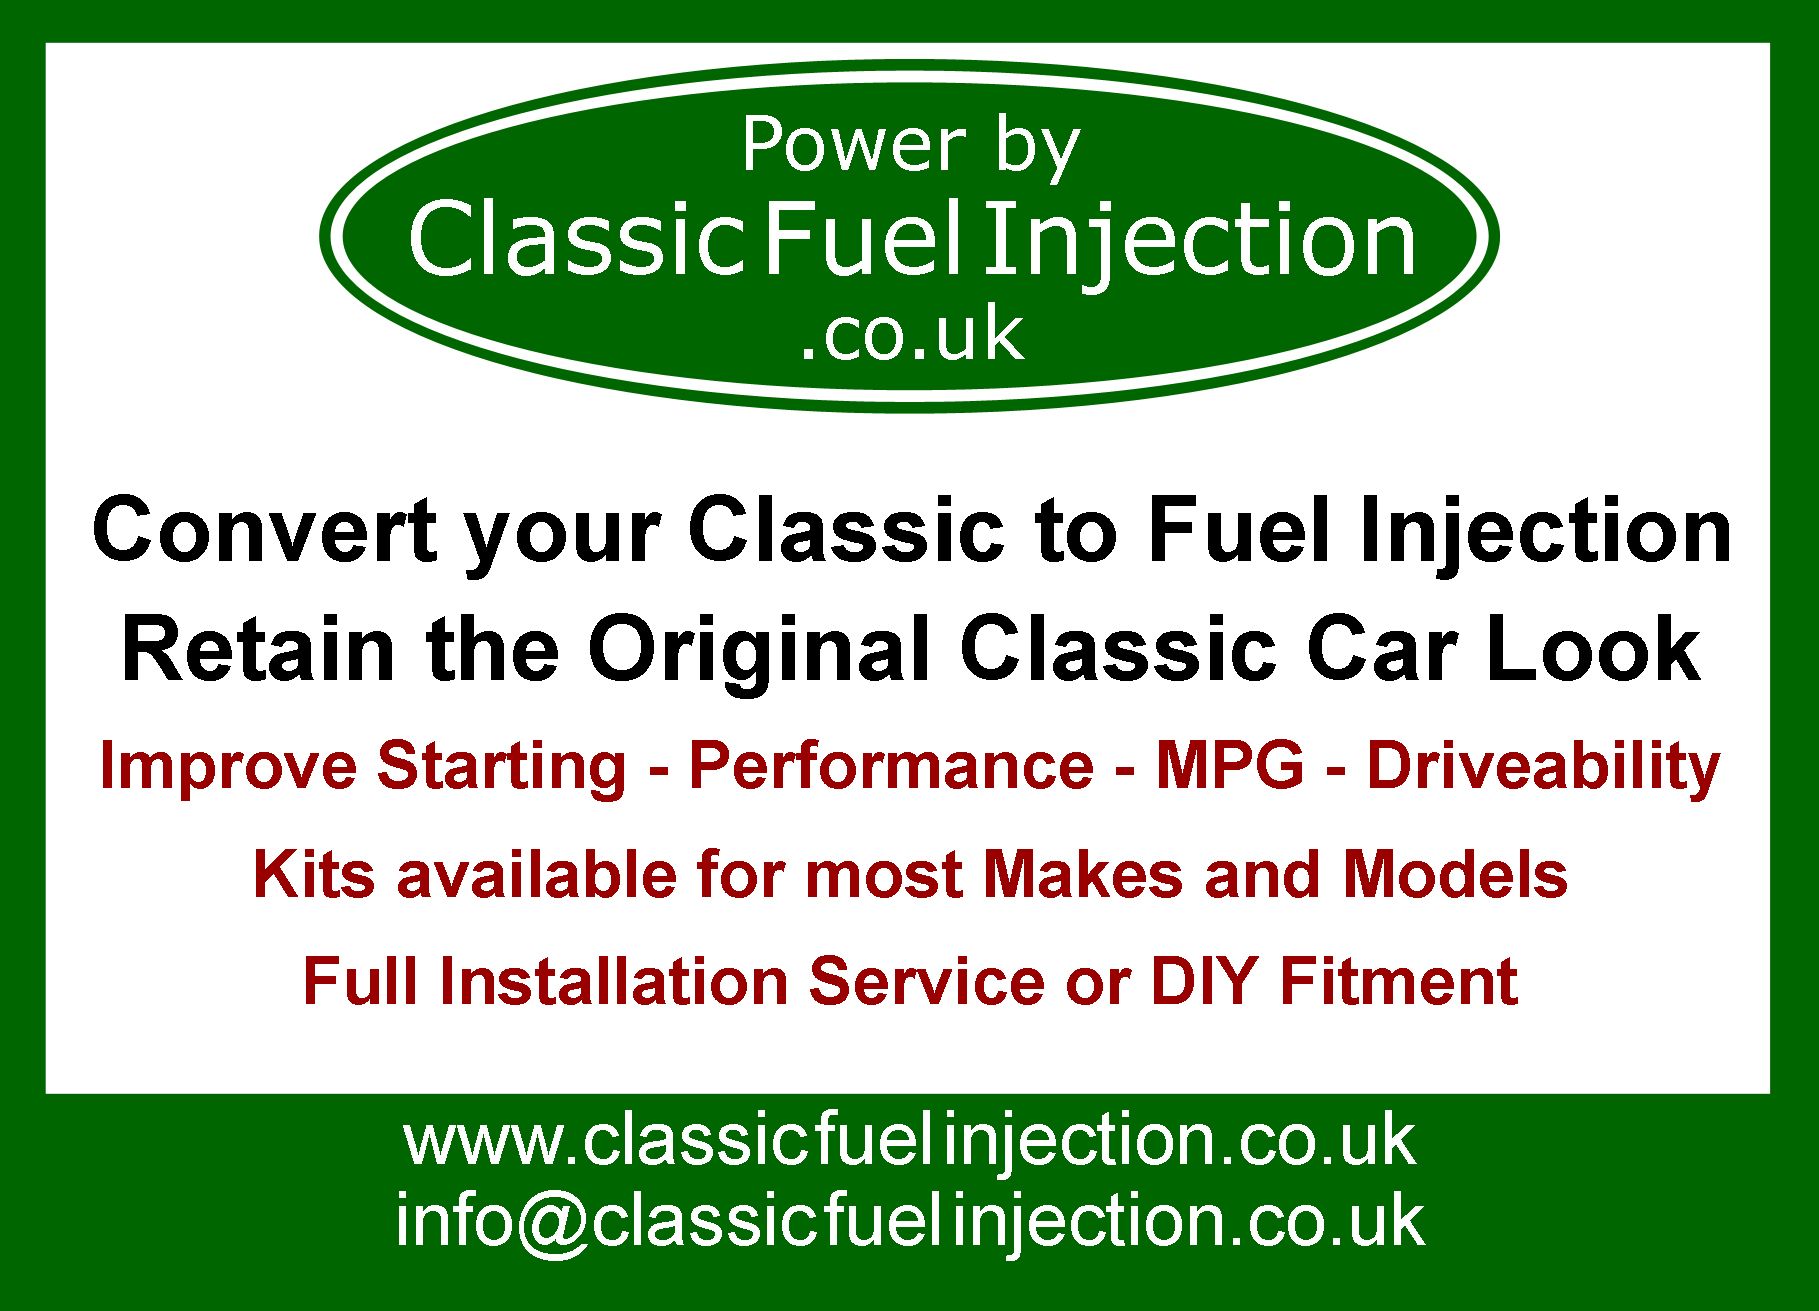 Classic Fuel Injection A6 Flyer front.jpg